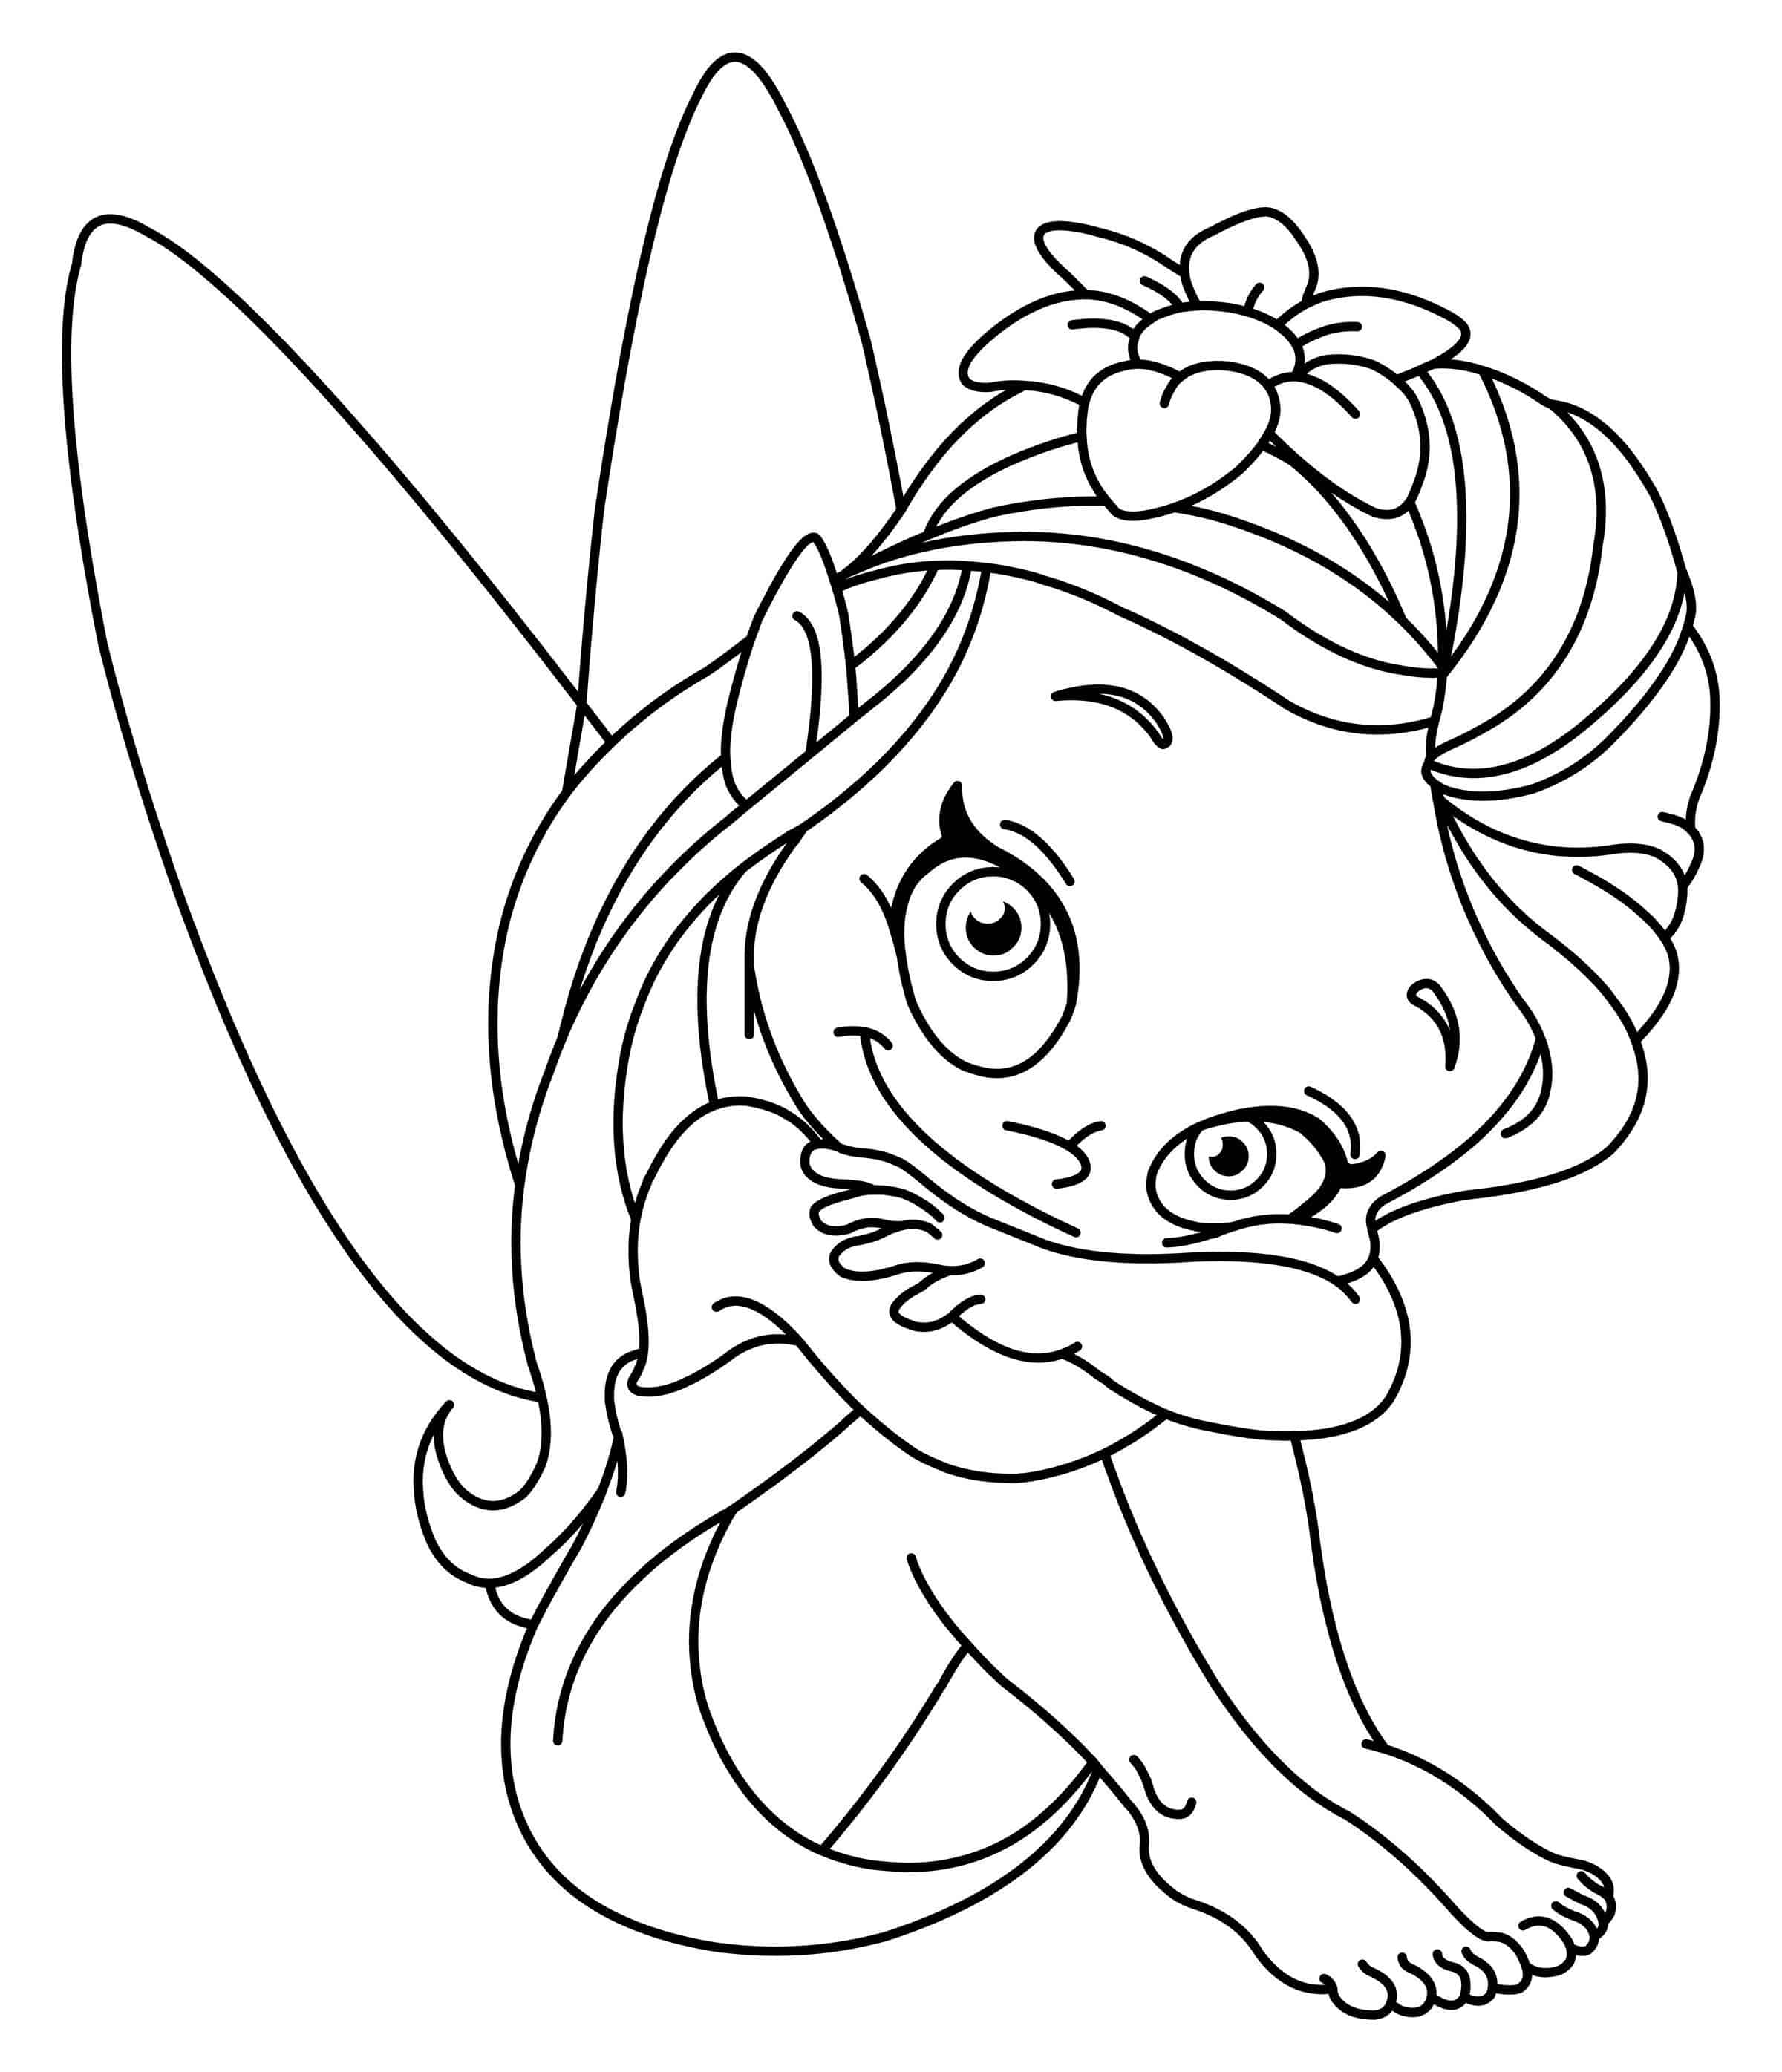 color sheets for girls the best ideas for coloring pages for girls printable for girls sheets color